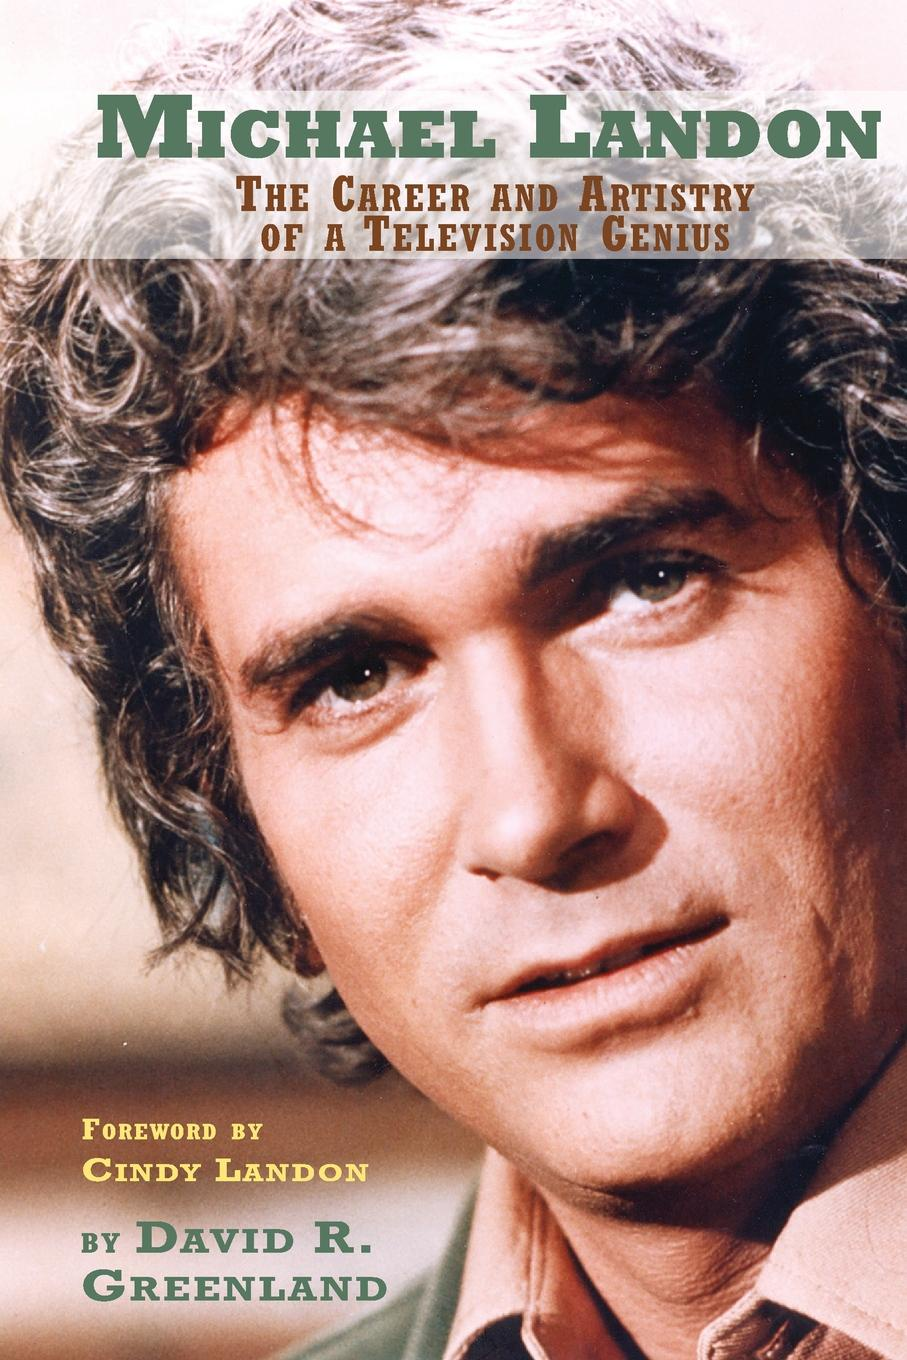 David R. Greenland MICHAEL LANDON. THE CAREER AND ARTISTRY OF A TELEVISION GENIUS